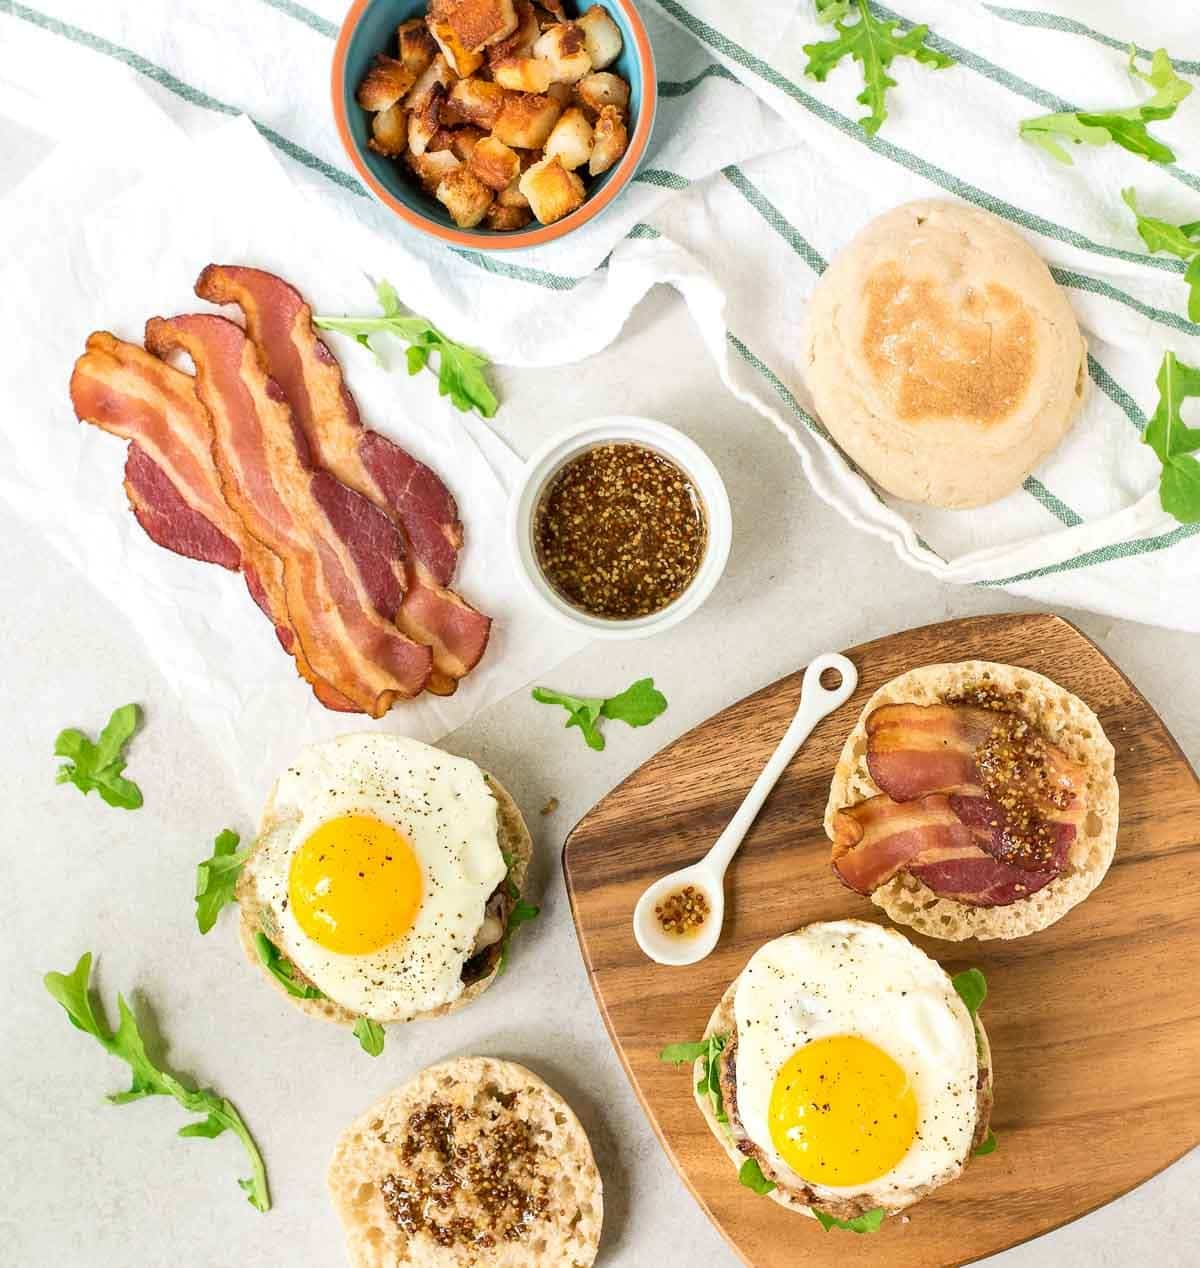 Maple Bacon Breakfast Burger — Juicy maple turkey burger patty with melty cheddar cheese, bacon, and a fried egg. The sweet and smoky flavors in this recipe are amazing! @wellplated